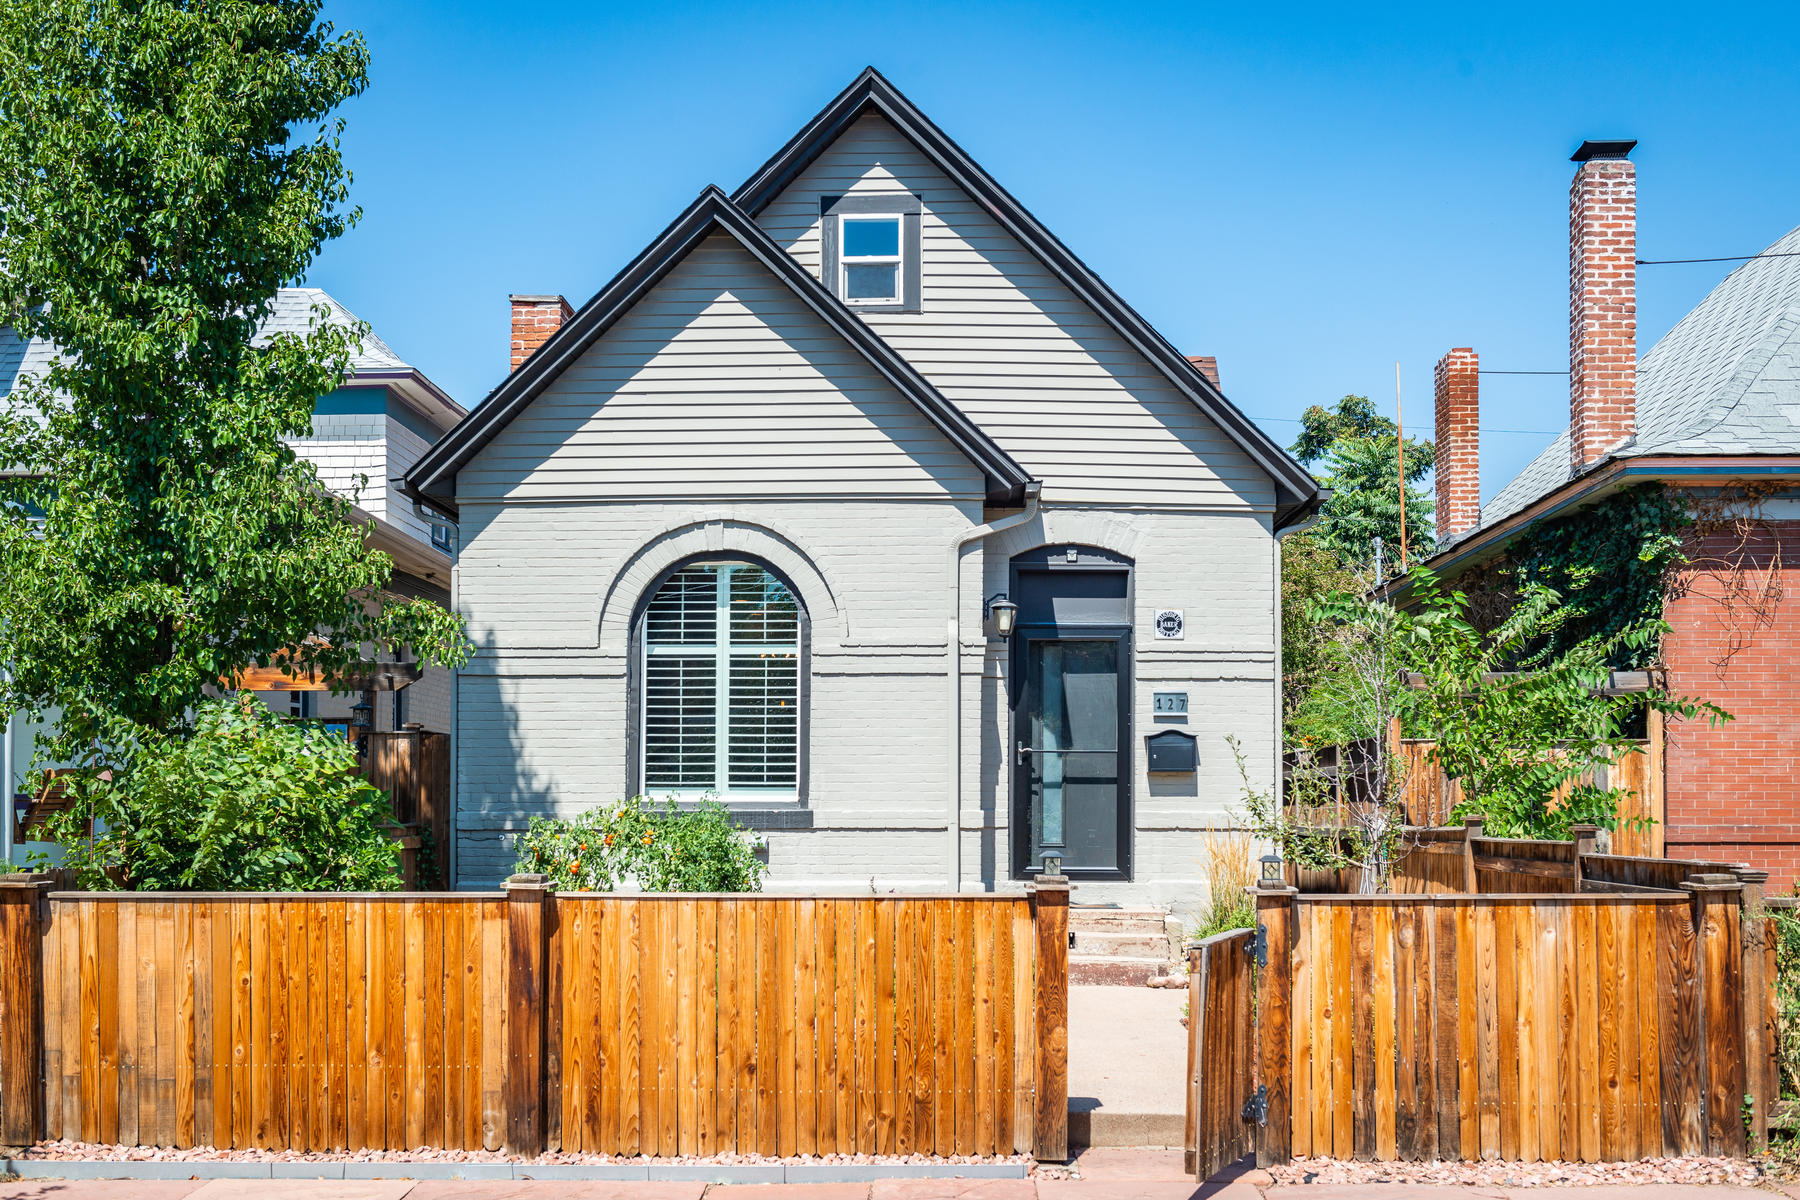 SOLD - July 2019: $599,995